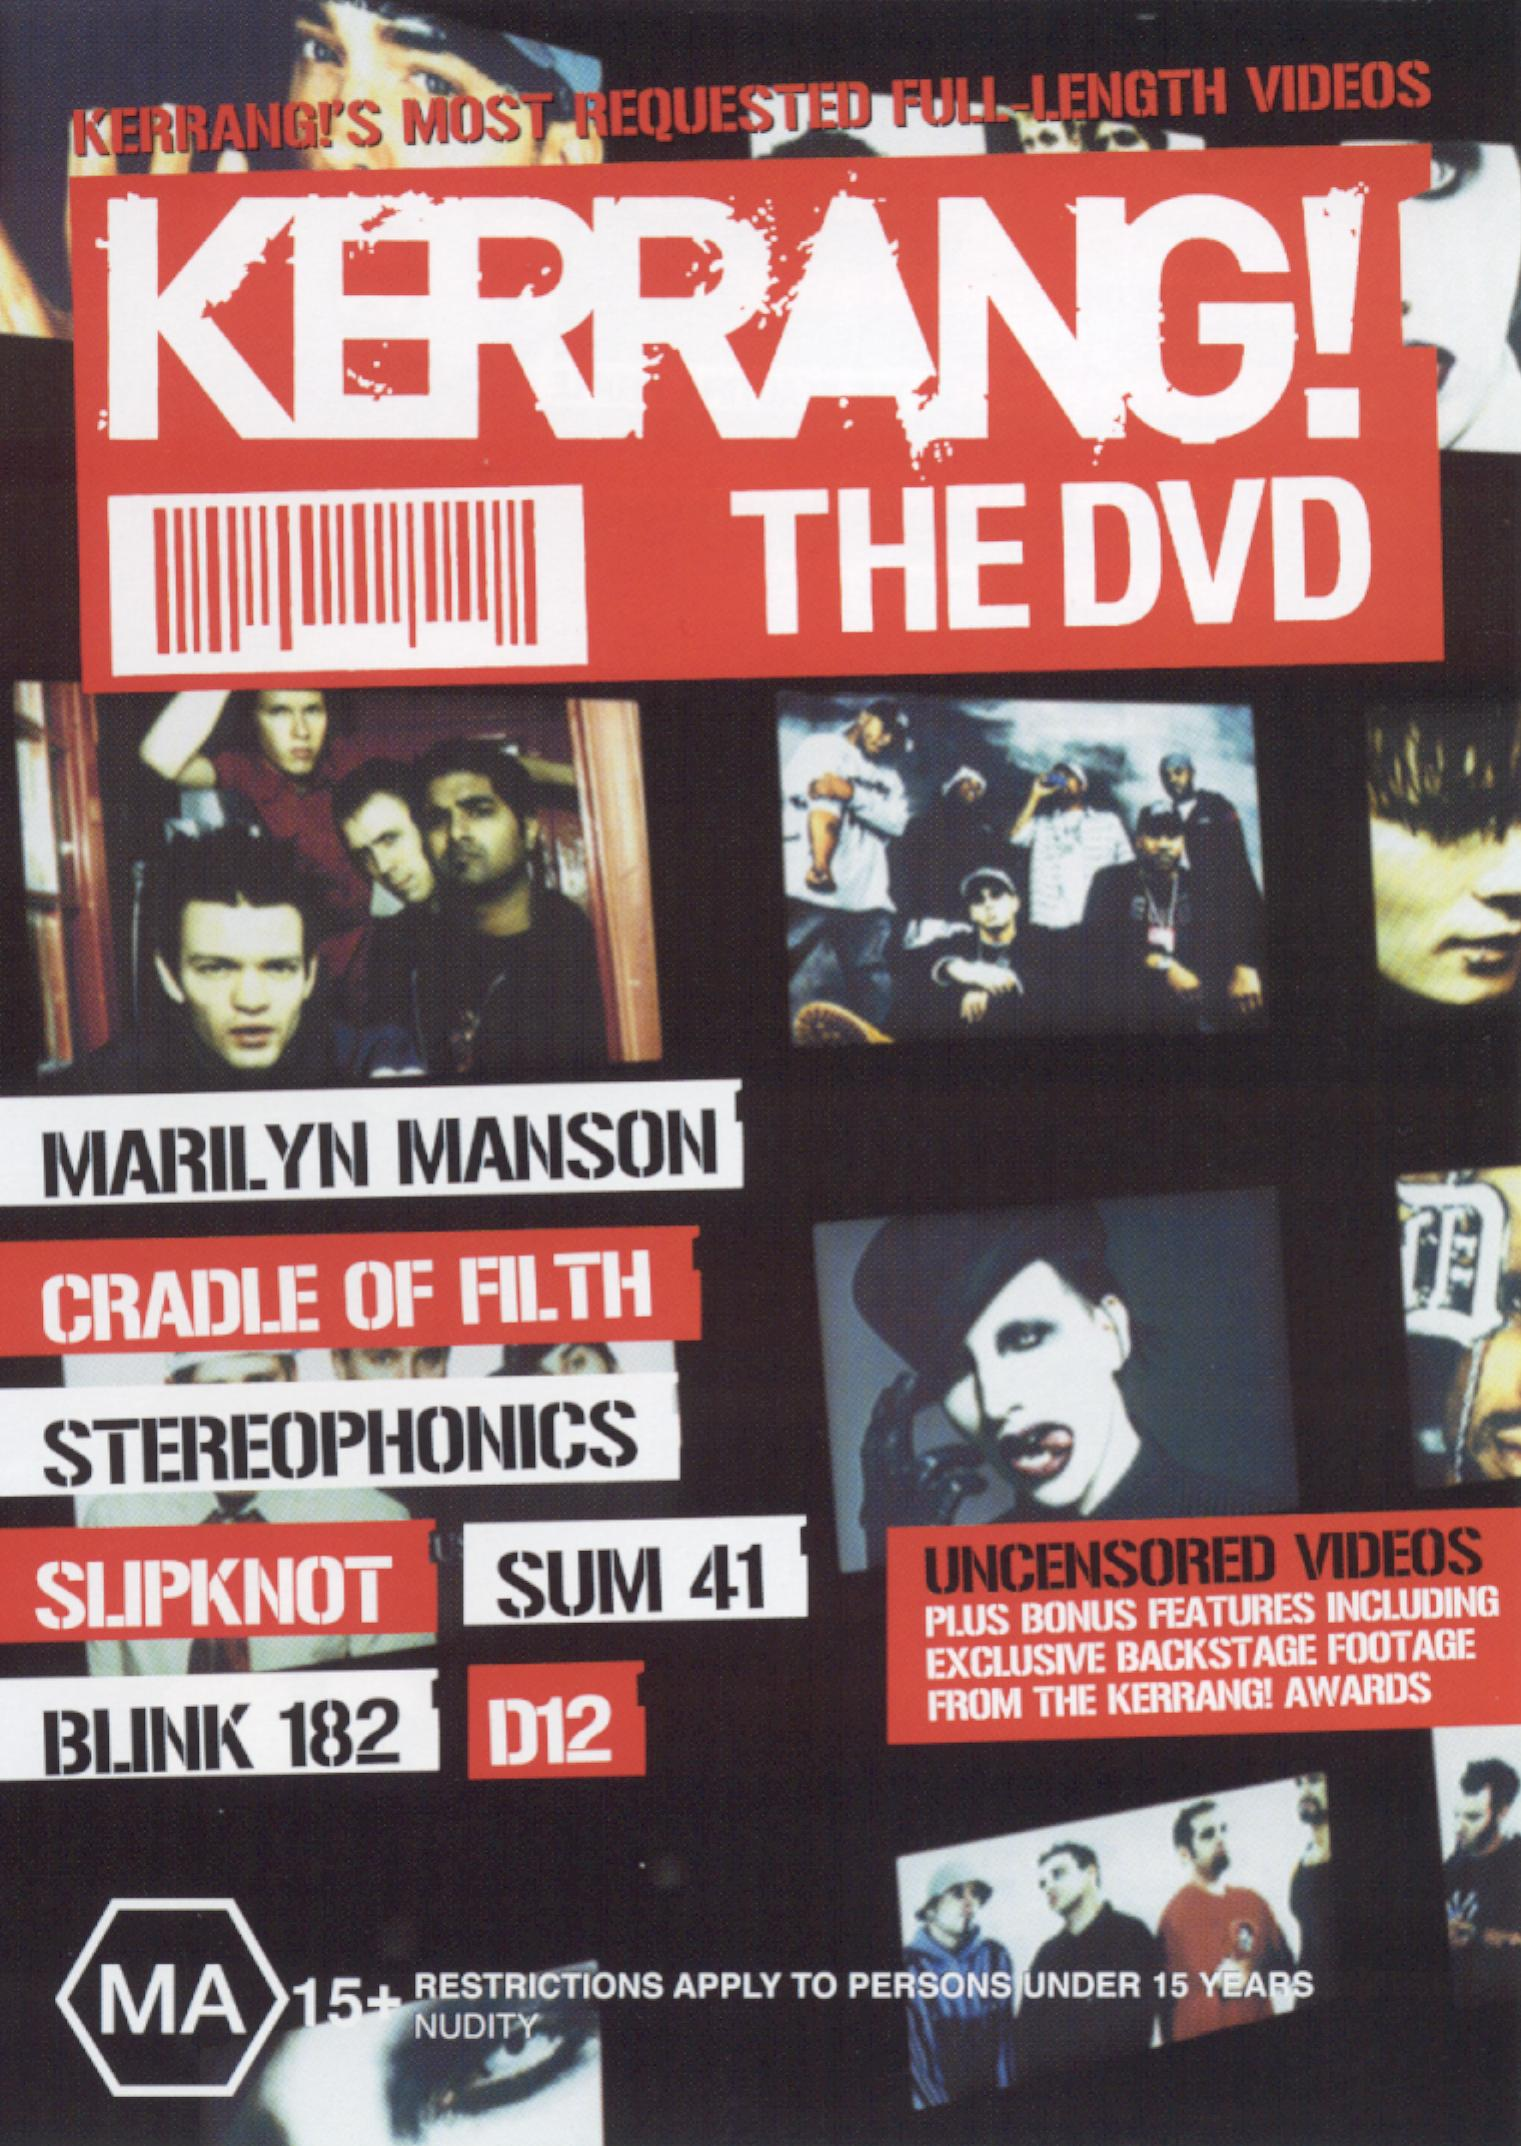 Kerrang! The DVD: Kerrang!'s Most Requested Full-Length Videos